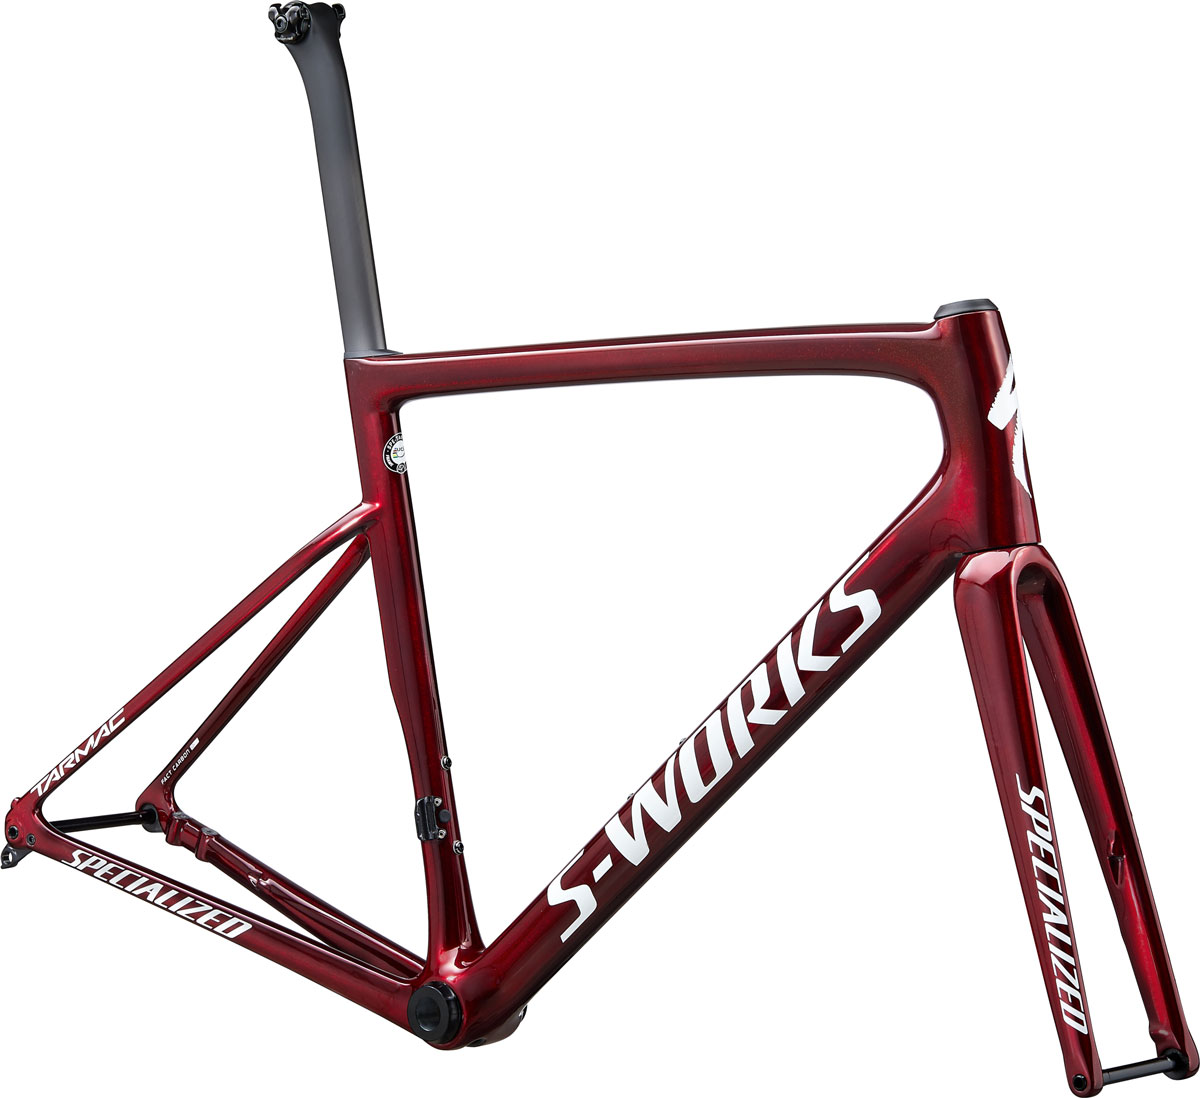 rám silničního kola Specialized S-Works Tarmac SL6 Disc 2020 gloss spectraflair/red/silver